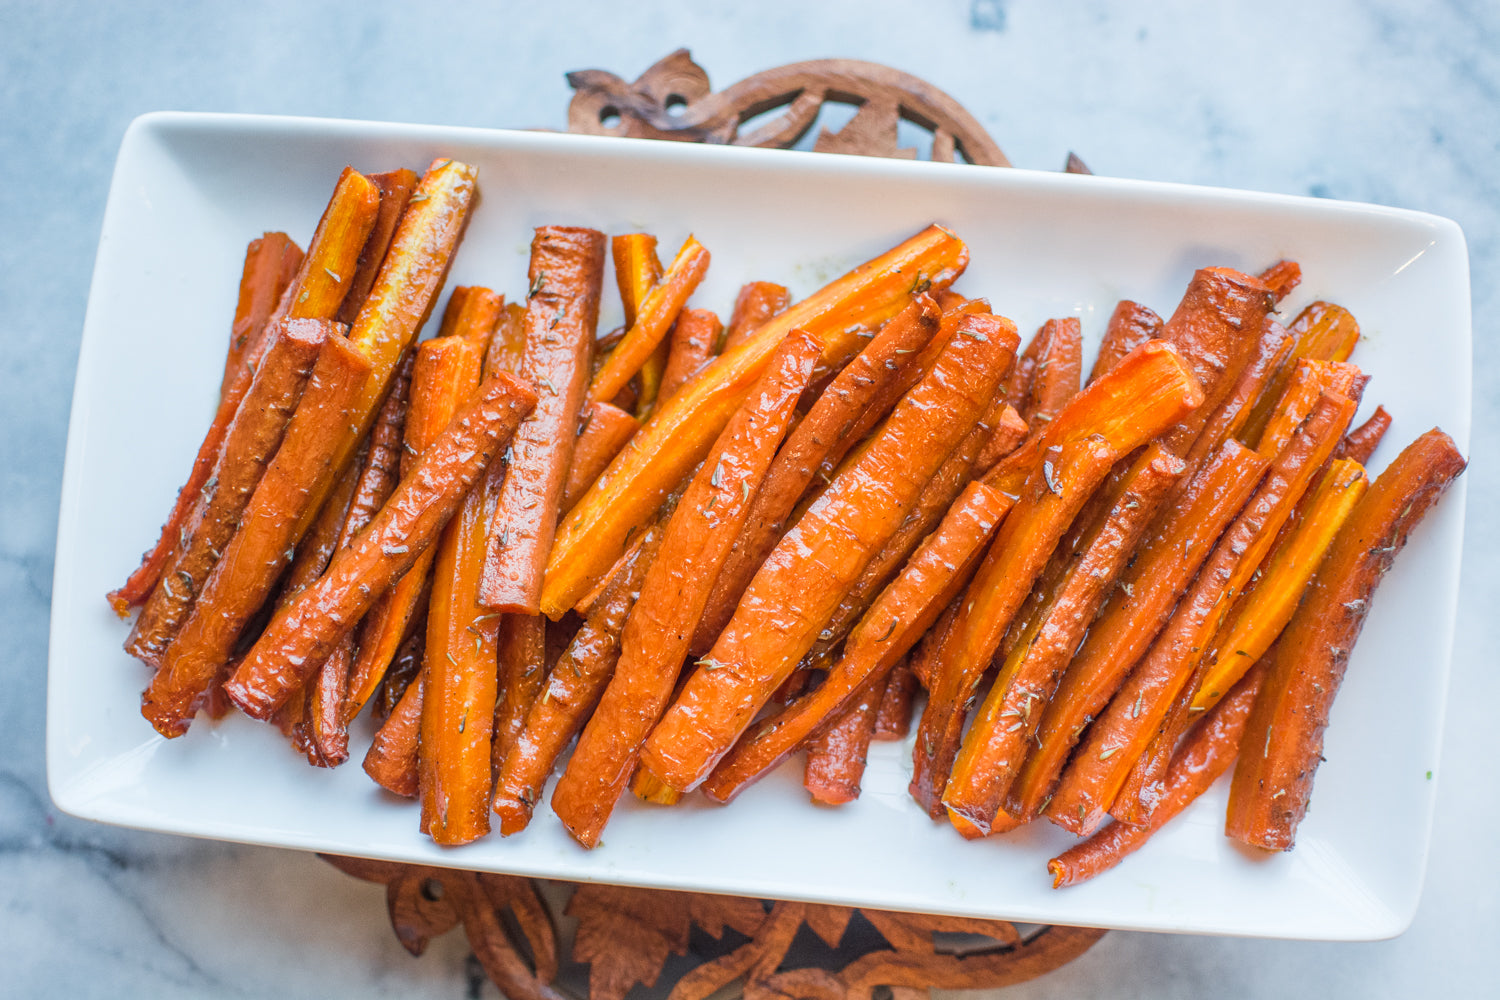 Roasted Carrots Served on Plate